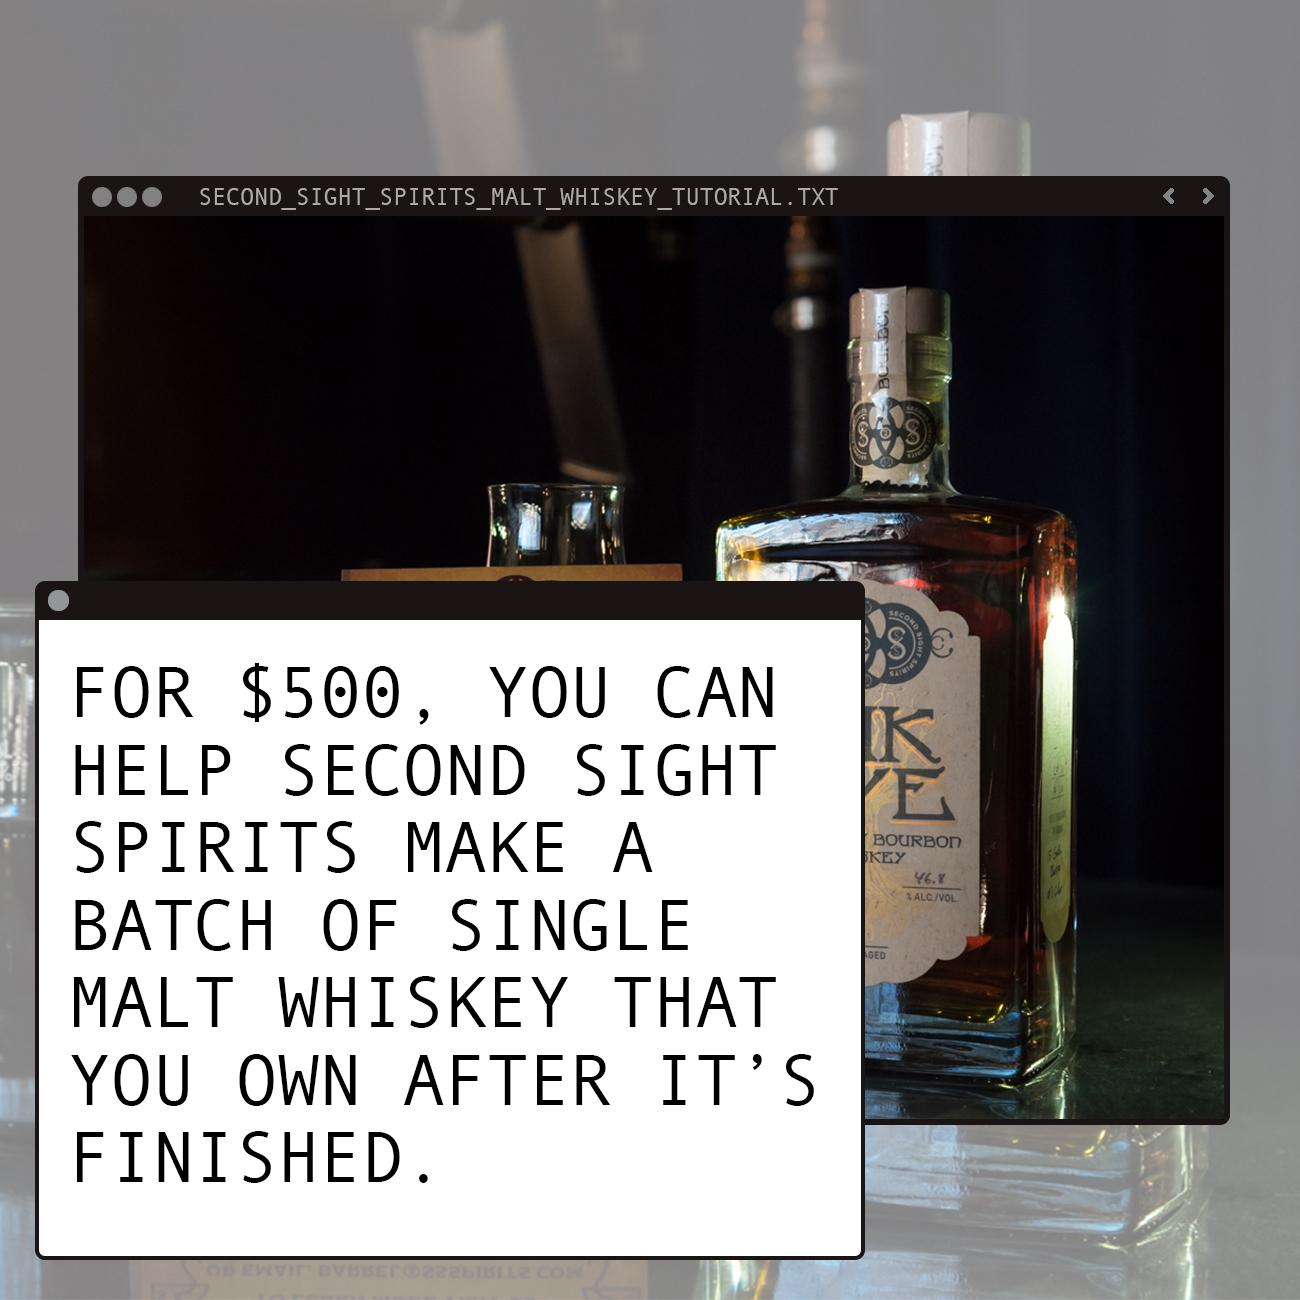 For $500, you can help Second Sight Spirits (located in Ludlow, Kentucky) make a batch of single malt whiskey that you own after it's finished. The batch makes 12 bottles, so if you split the cost with 11 others, then it's approximately $42 per bottle. Not bad for a whiskey you helped create, eh? ADDRESS: 301b Elm St (41016) / Image: Phil Armstrong // Published: 3.18.18